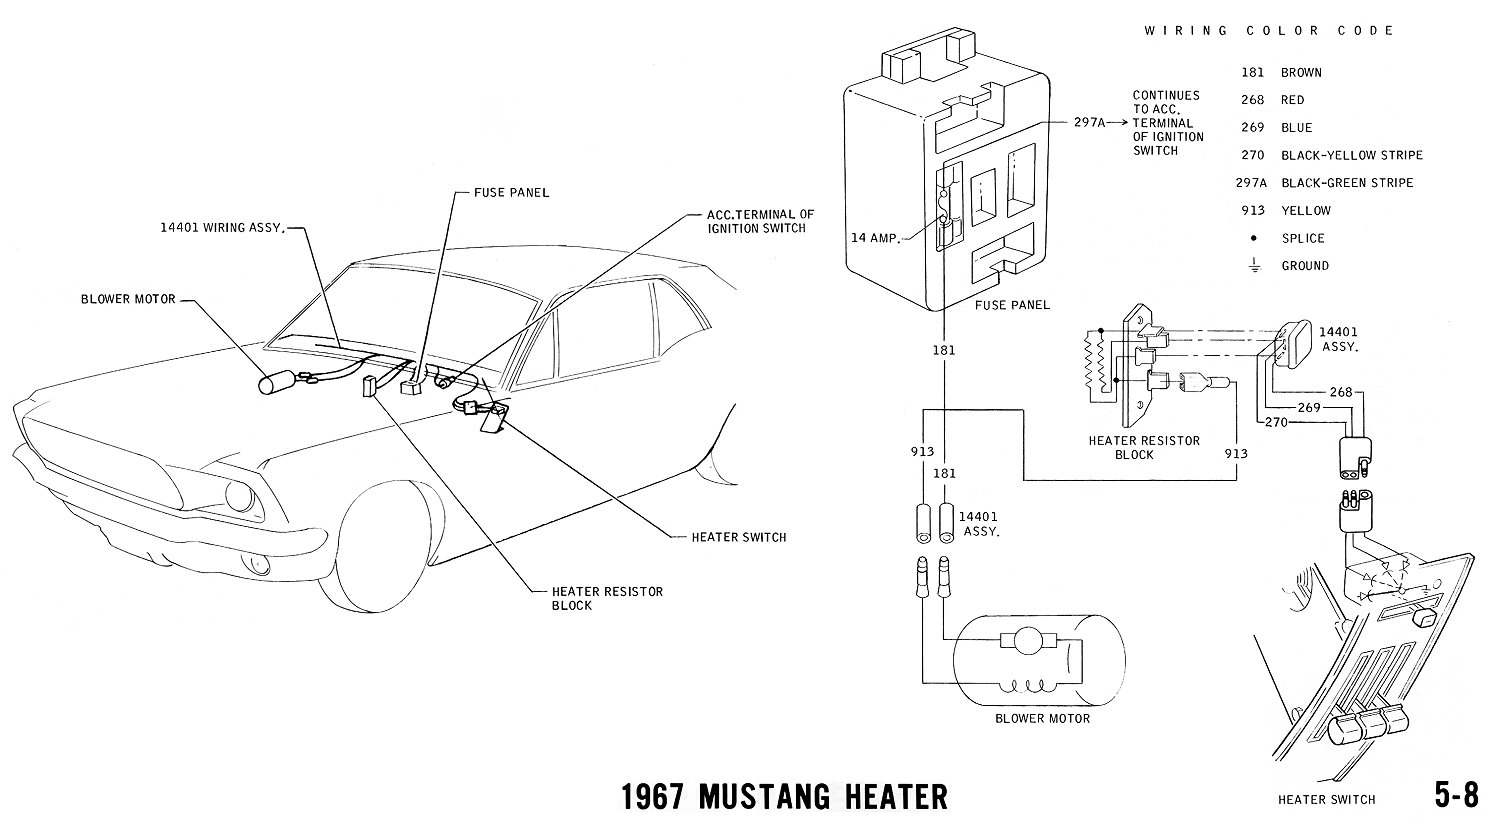 67heater 1967 mustang wiring and vacuum diagrams average joe restoration 1966 mustang alternator wiring diagram at mifinder.co